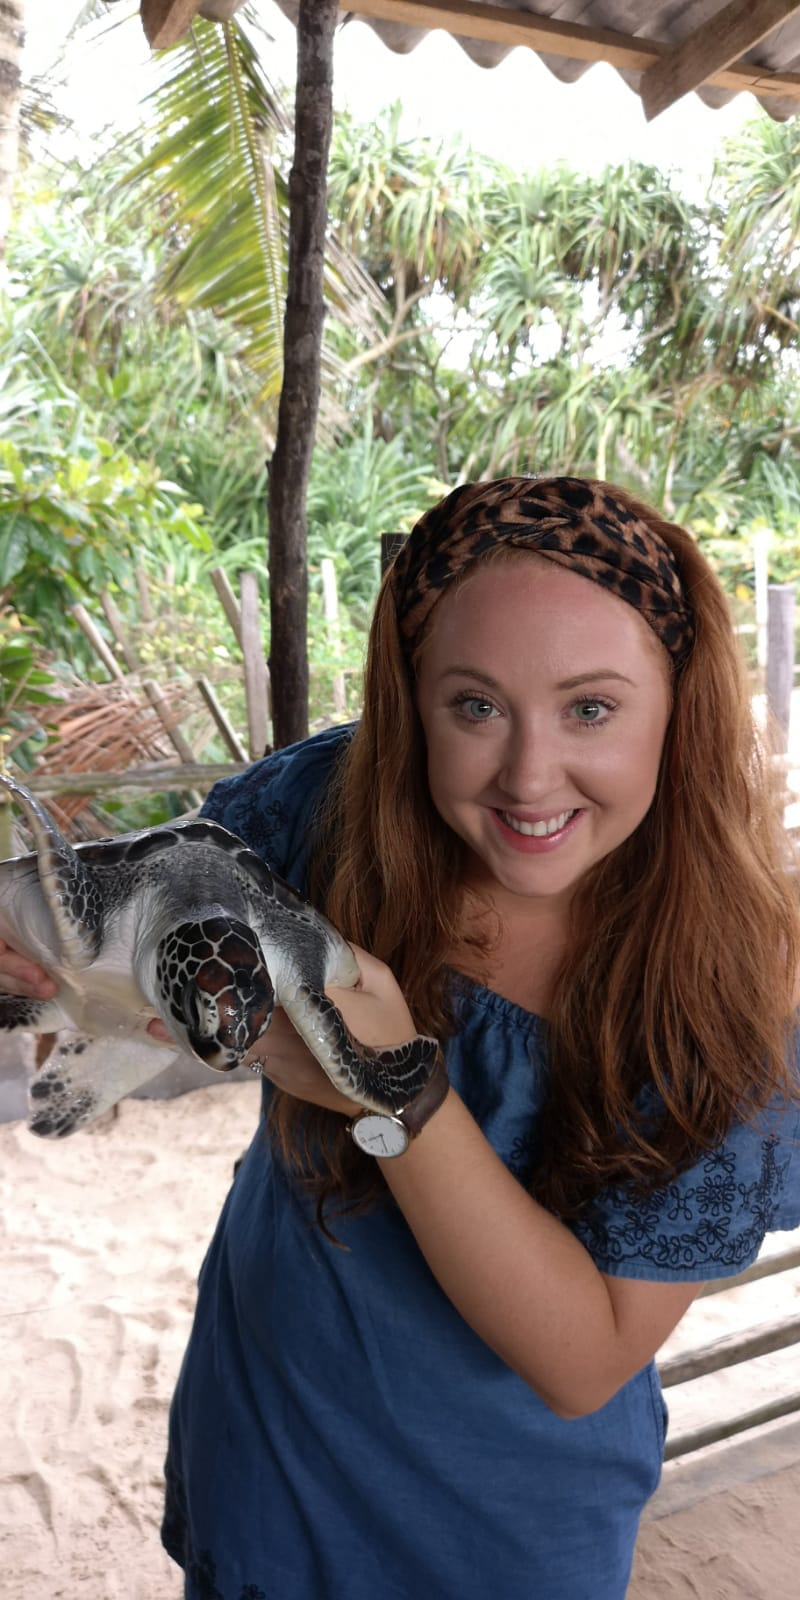 invite-to-paradise-sri-lanka-holiday-honeymoon-specialists-customer-feedback-elin-jordan-luce-sea-turtle-hatchery-hold.JPG